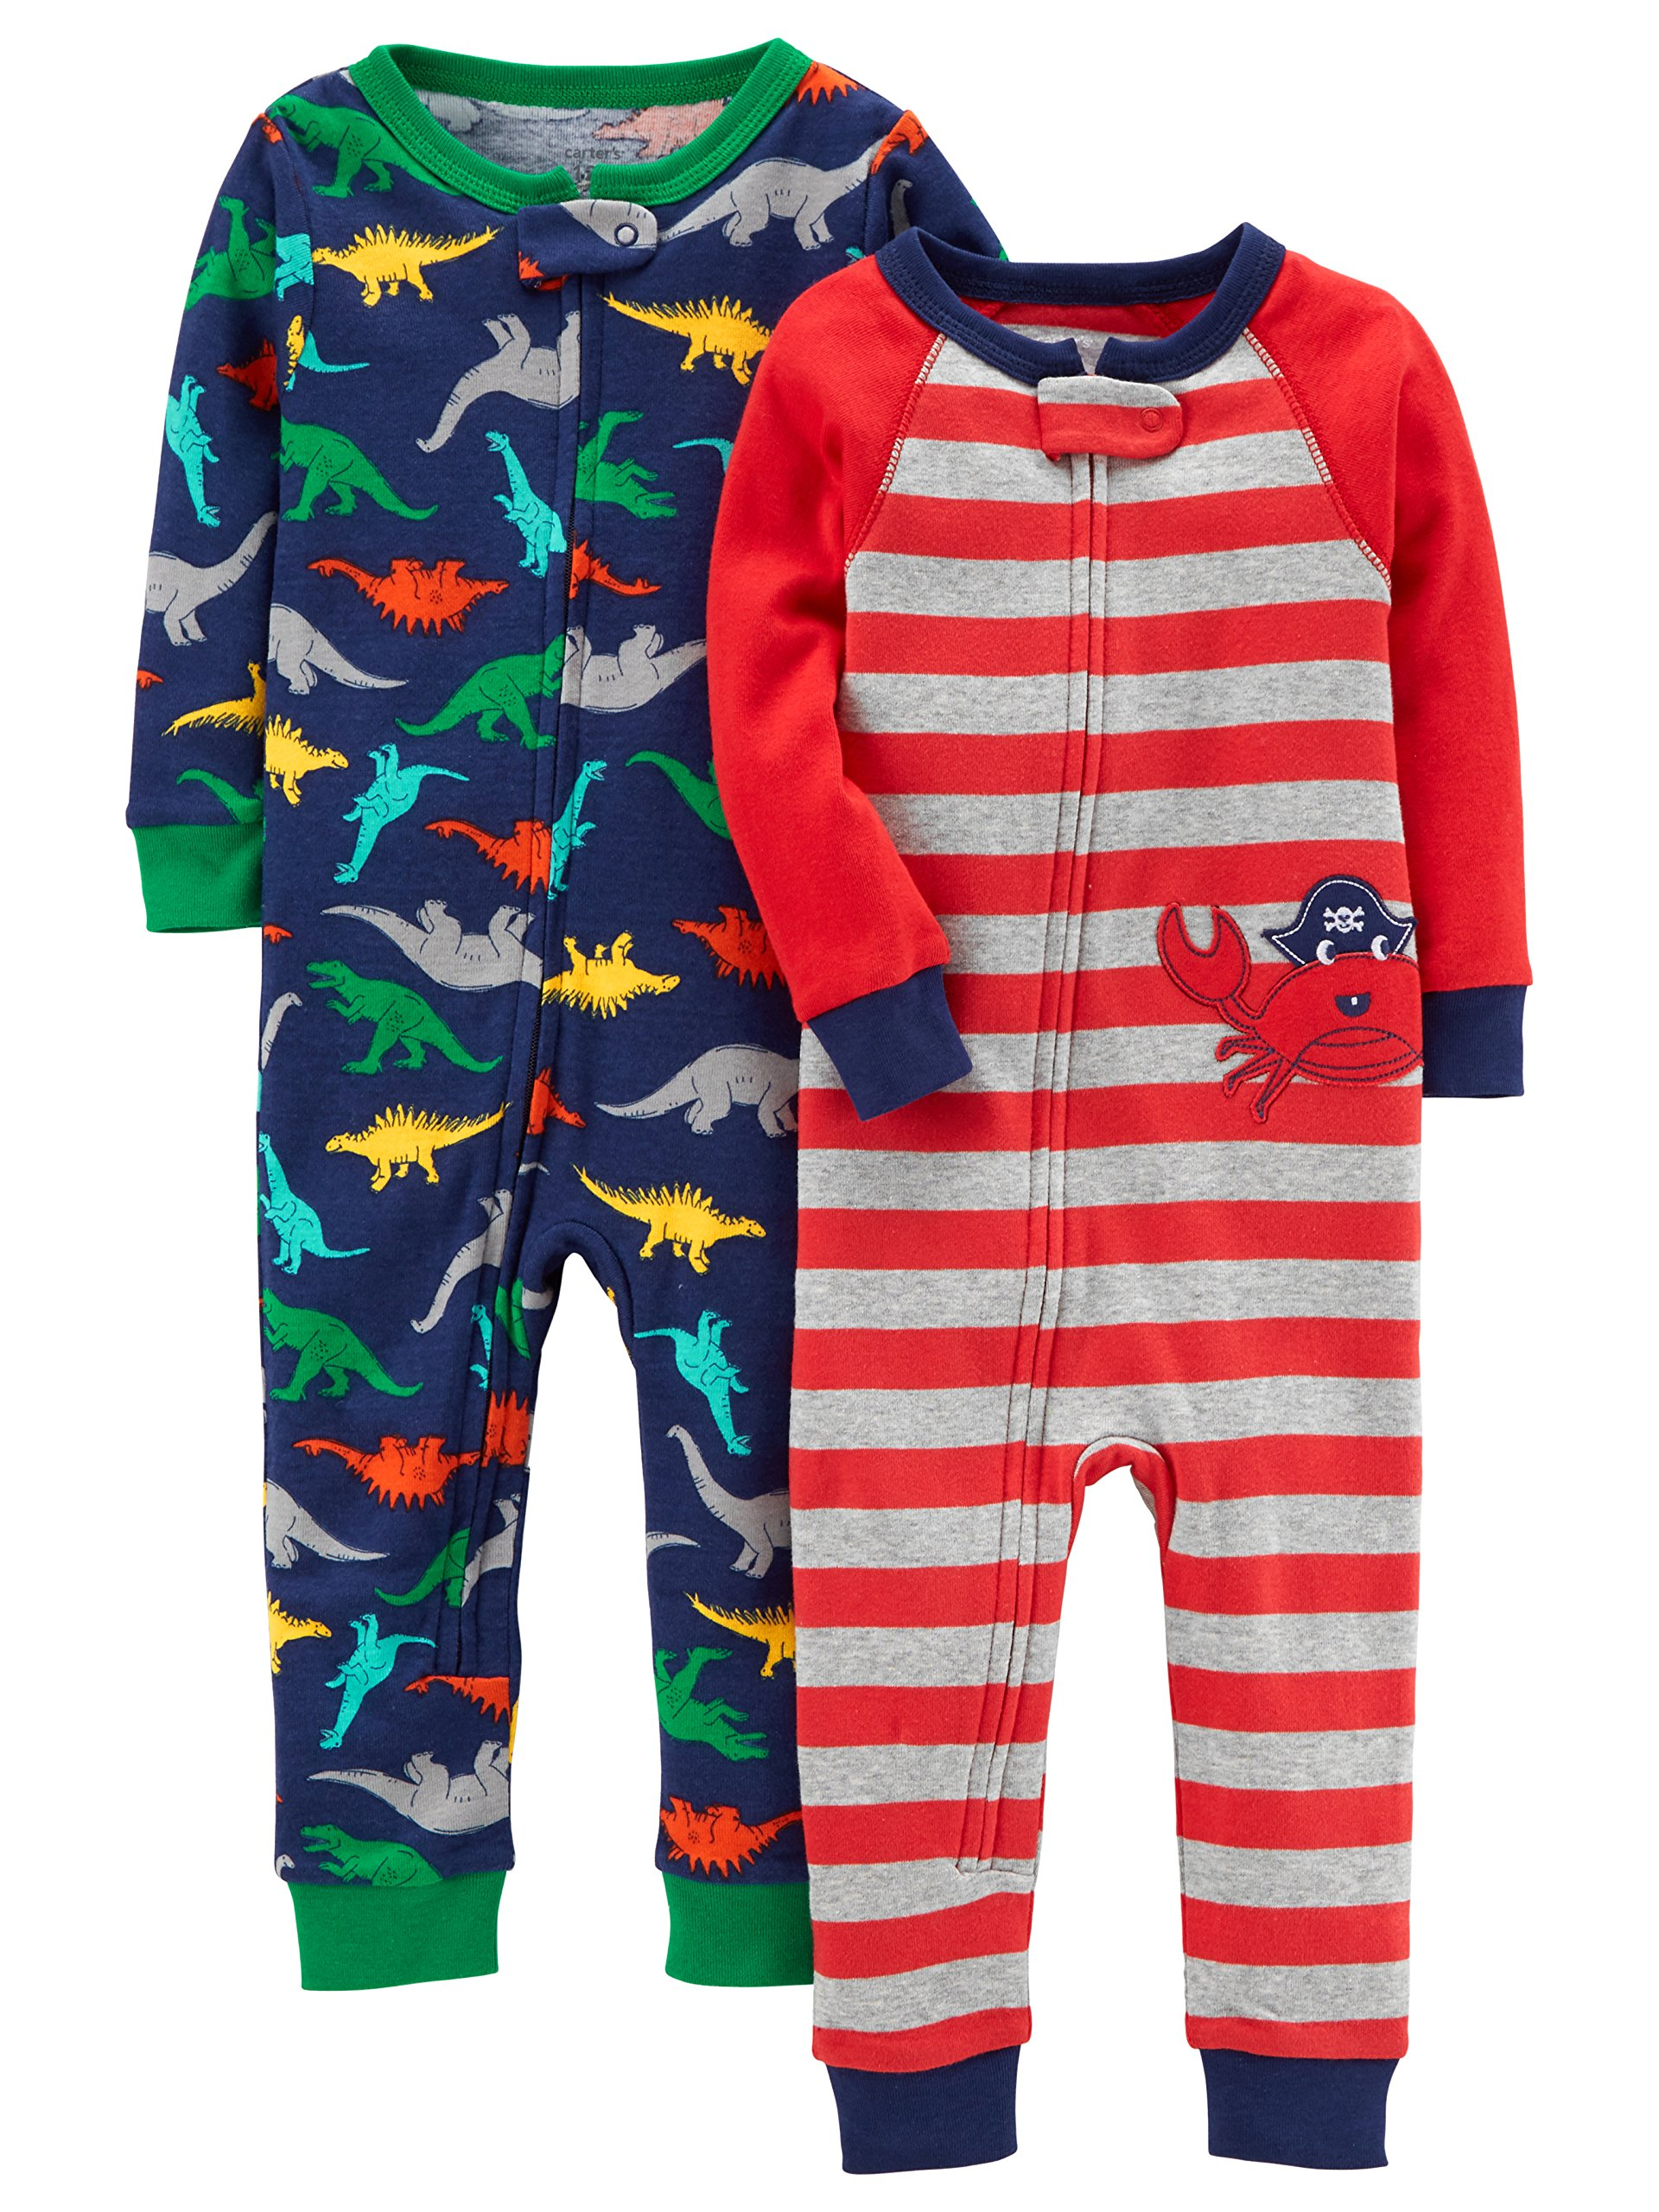 Carter's Baby Boys' 2-Pack Cotton Footless Pajamas, Crab/Dino, 24 Months